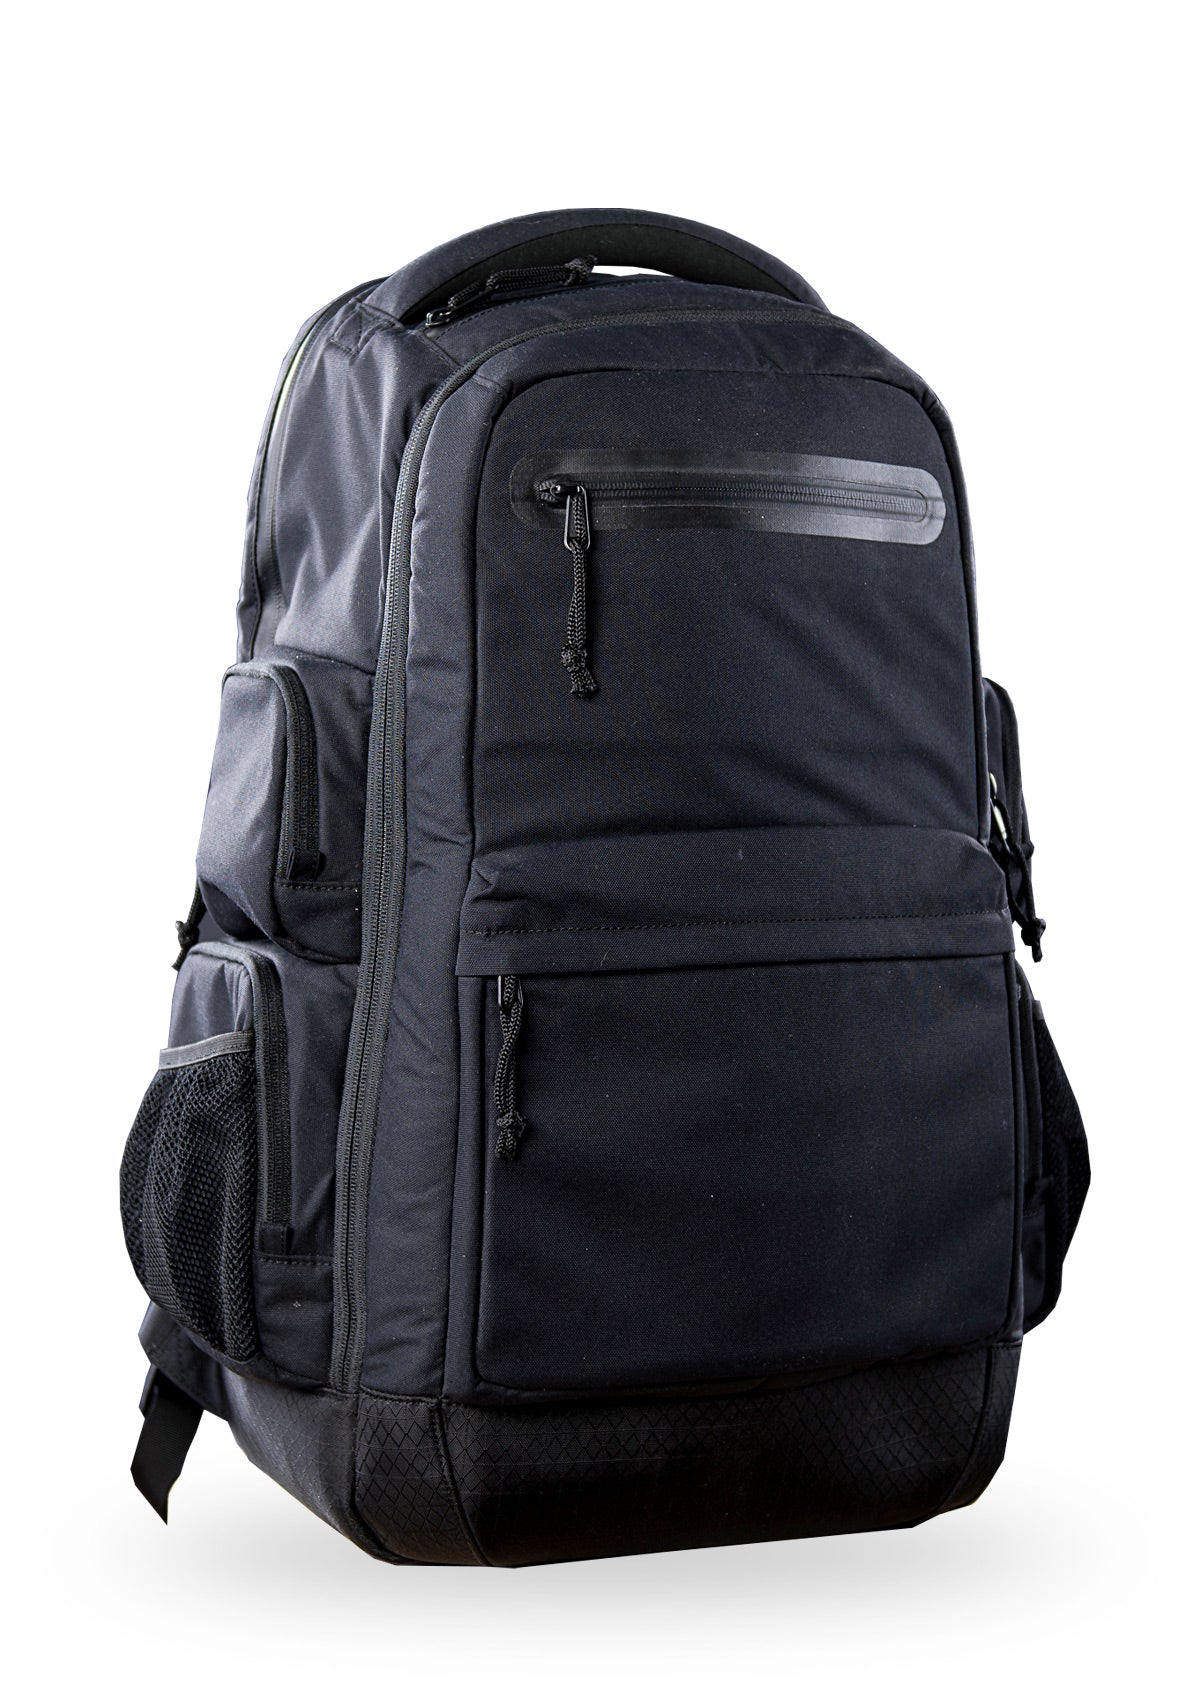 needessentials travel backpack surfing black non branded